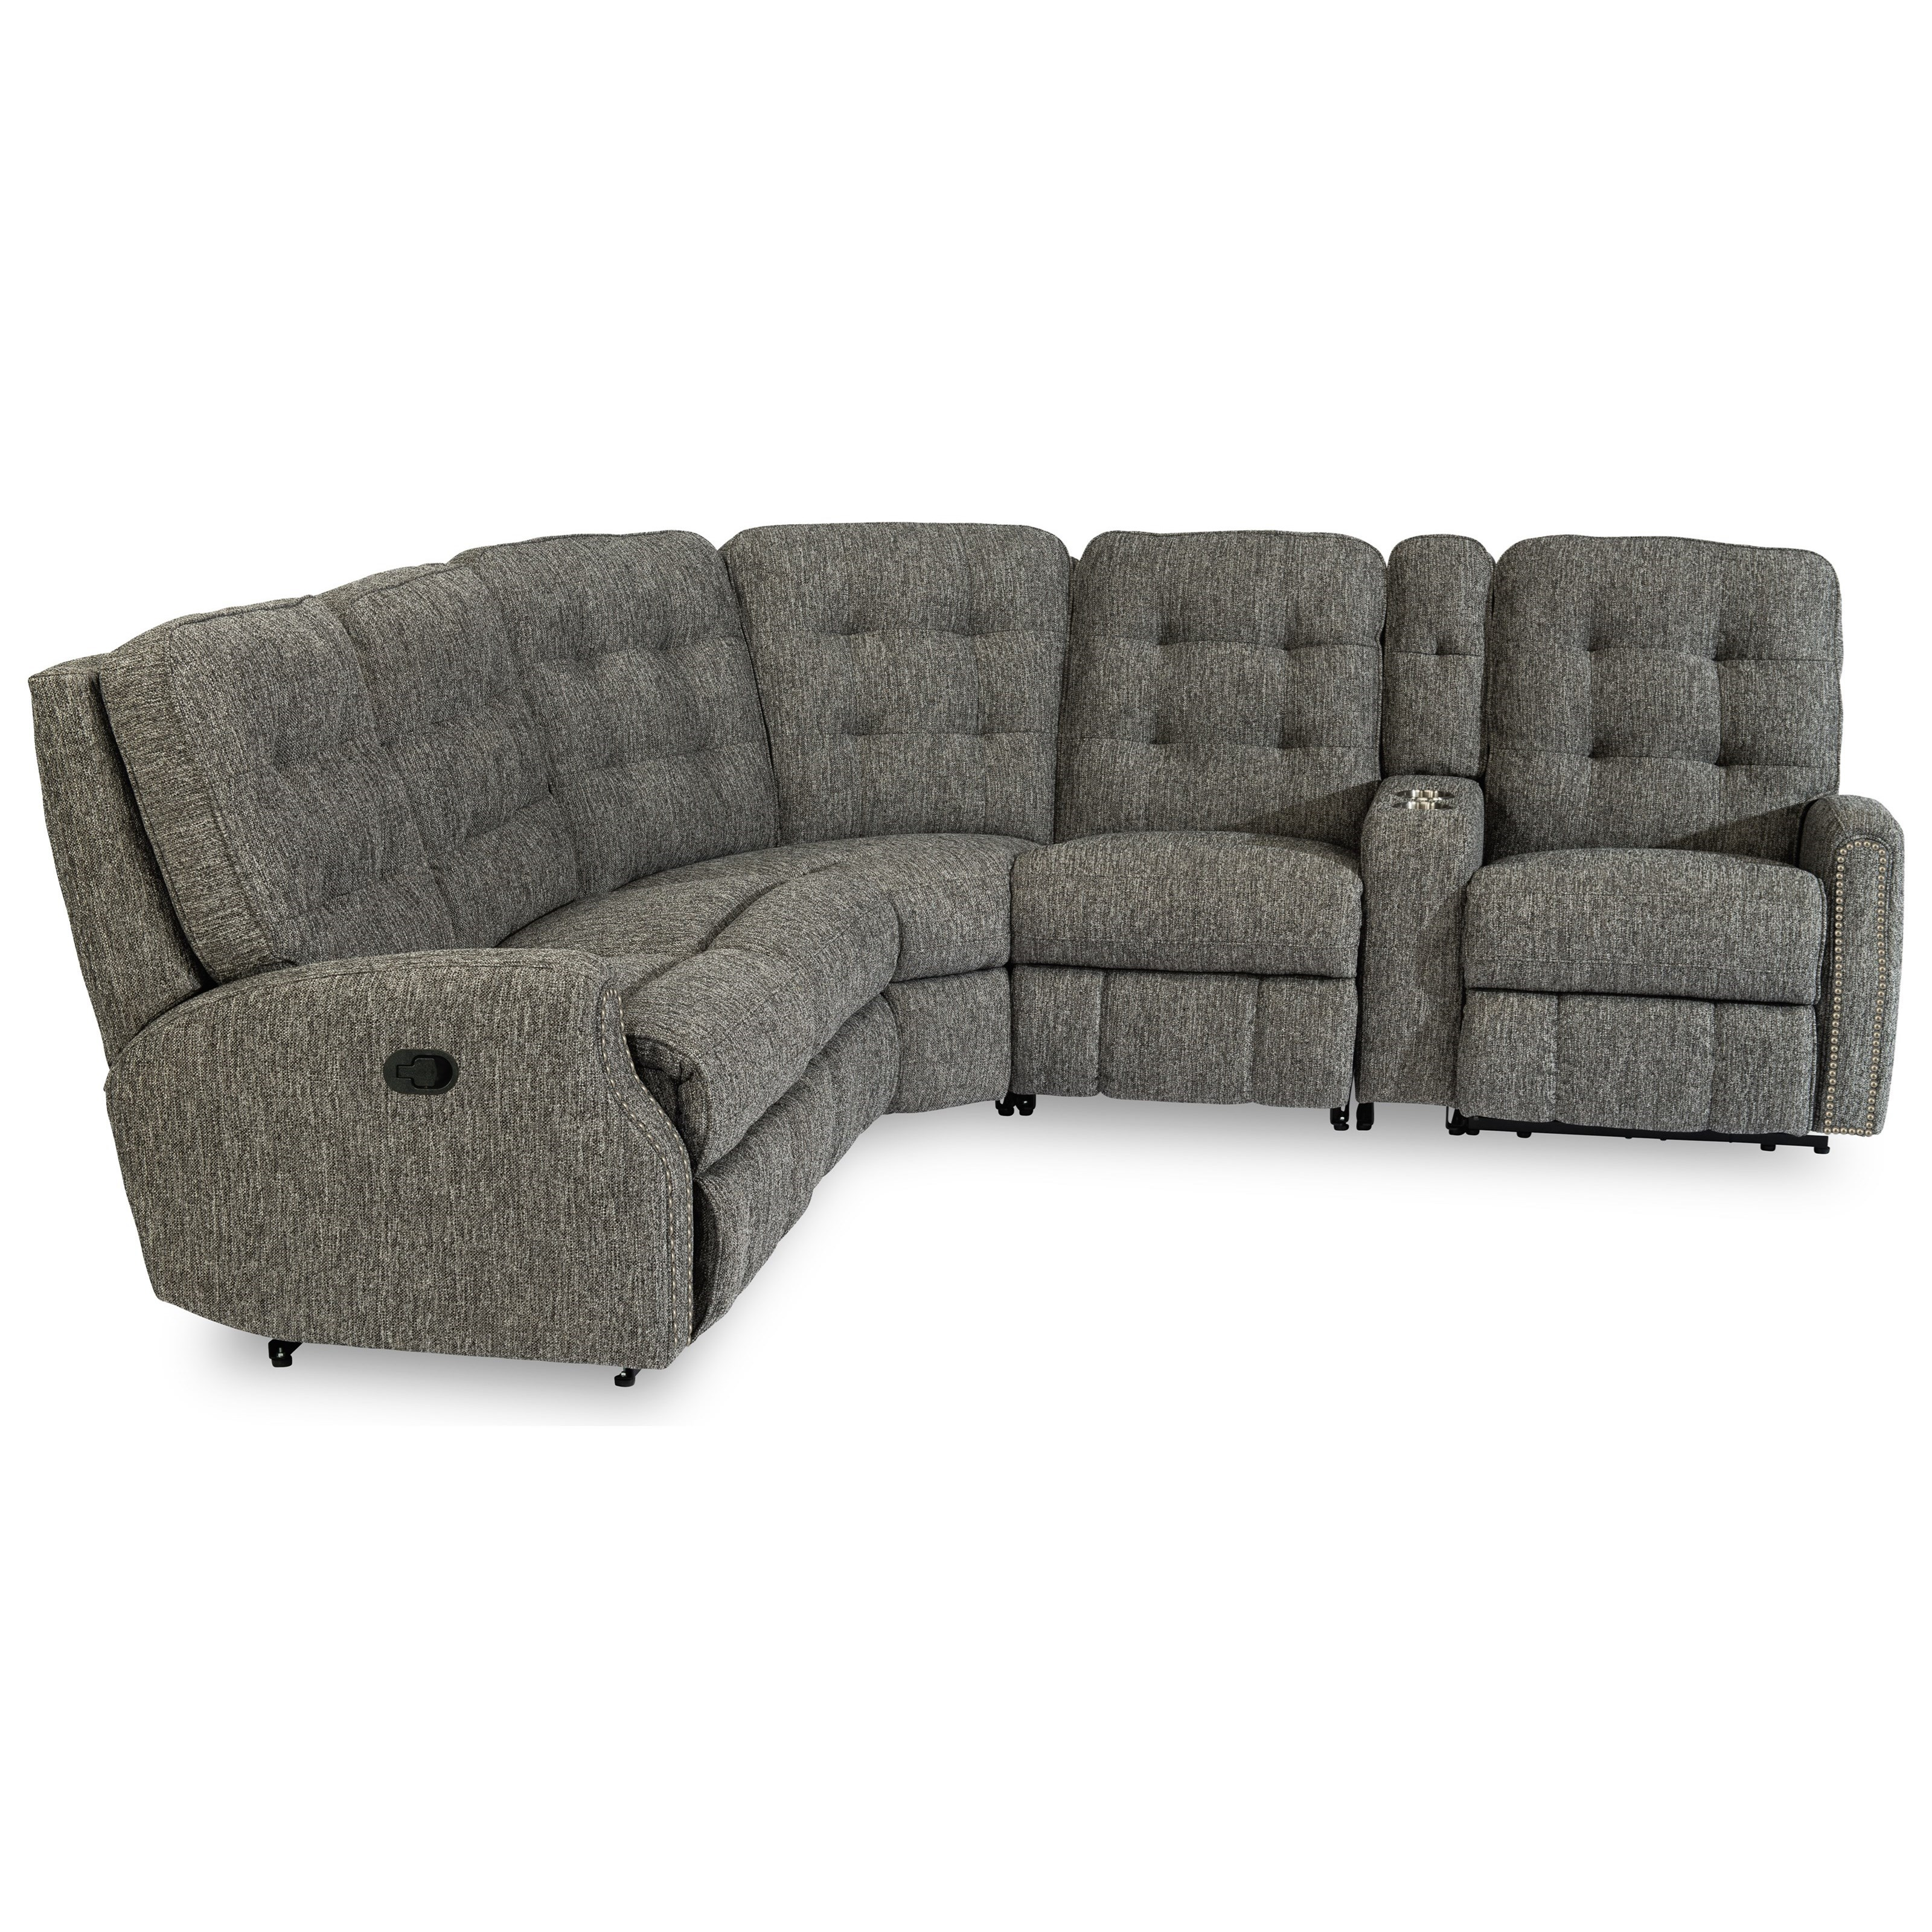 Devon 6-Piece Reclining Sectional by Flexsteel at Home Collections Furniture